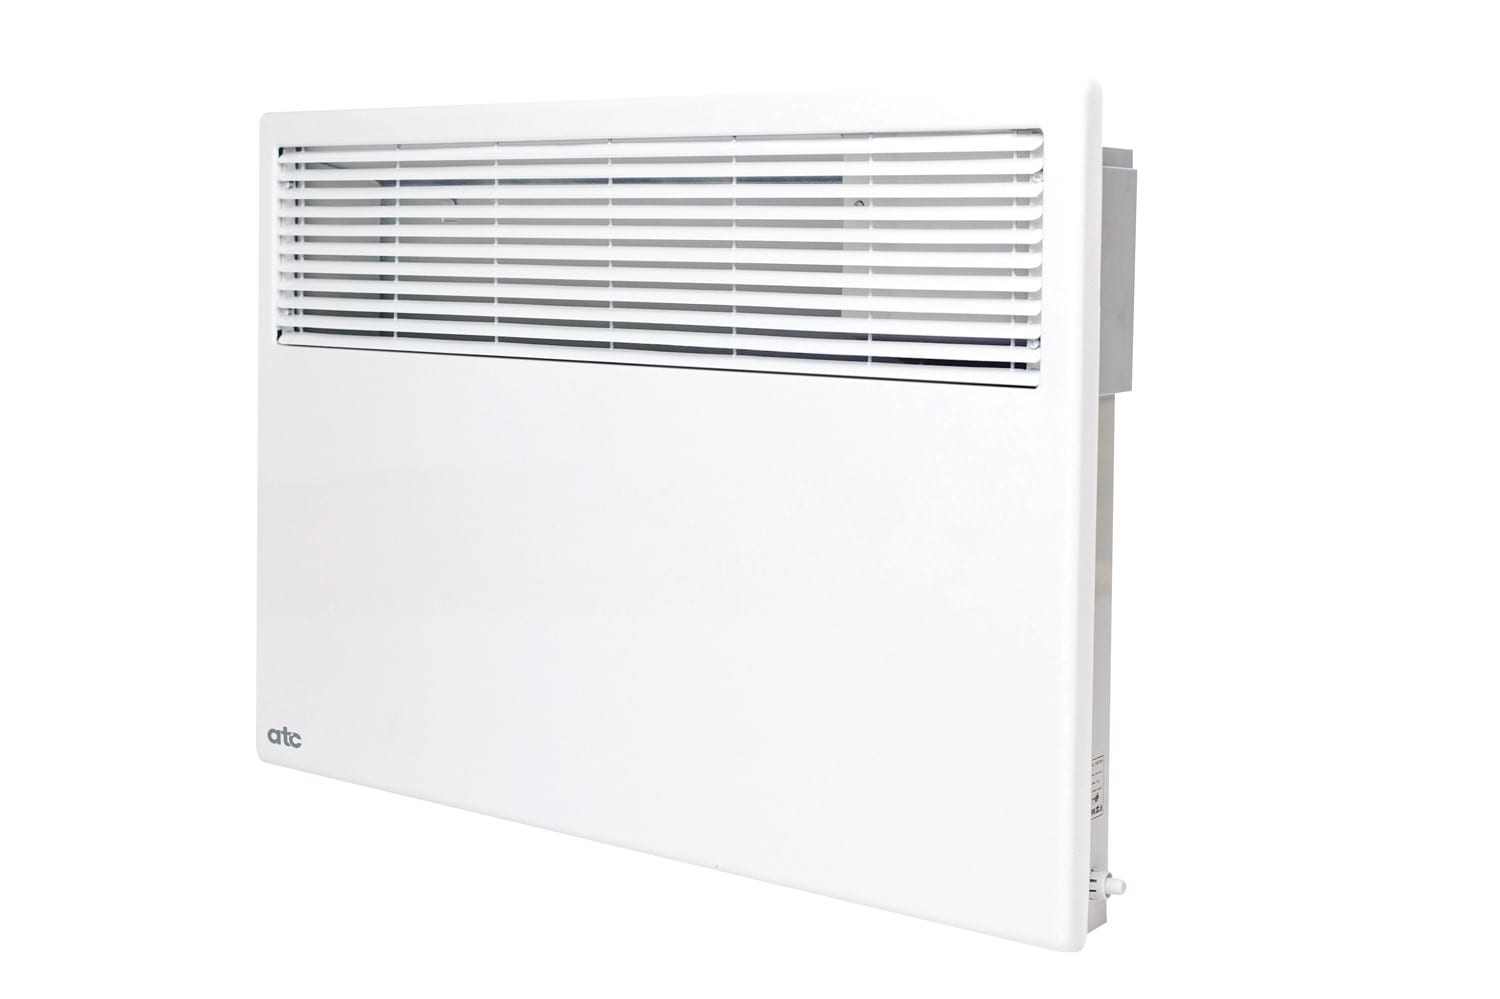 Almeria Digital Panel Heater